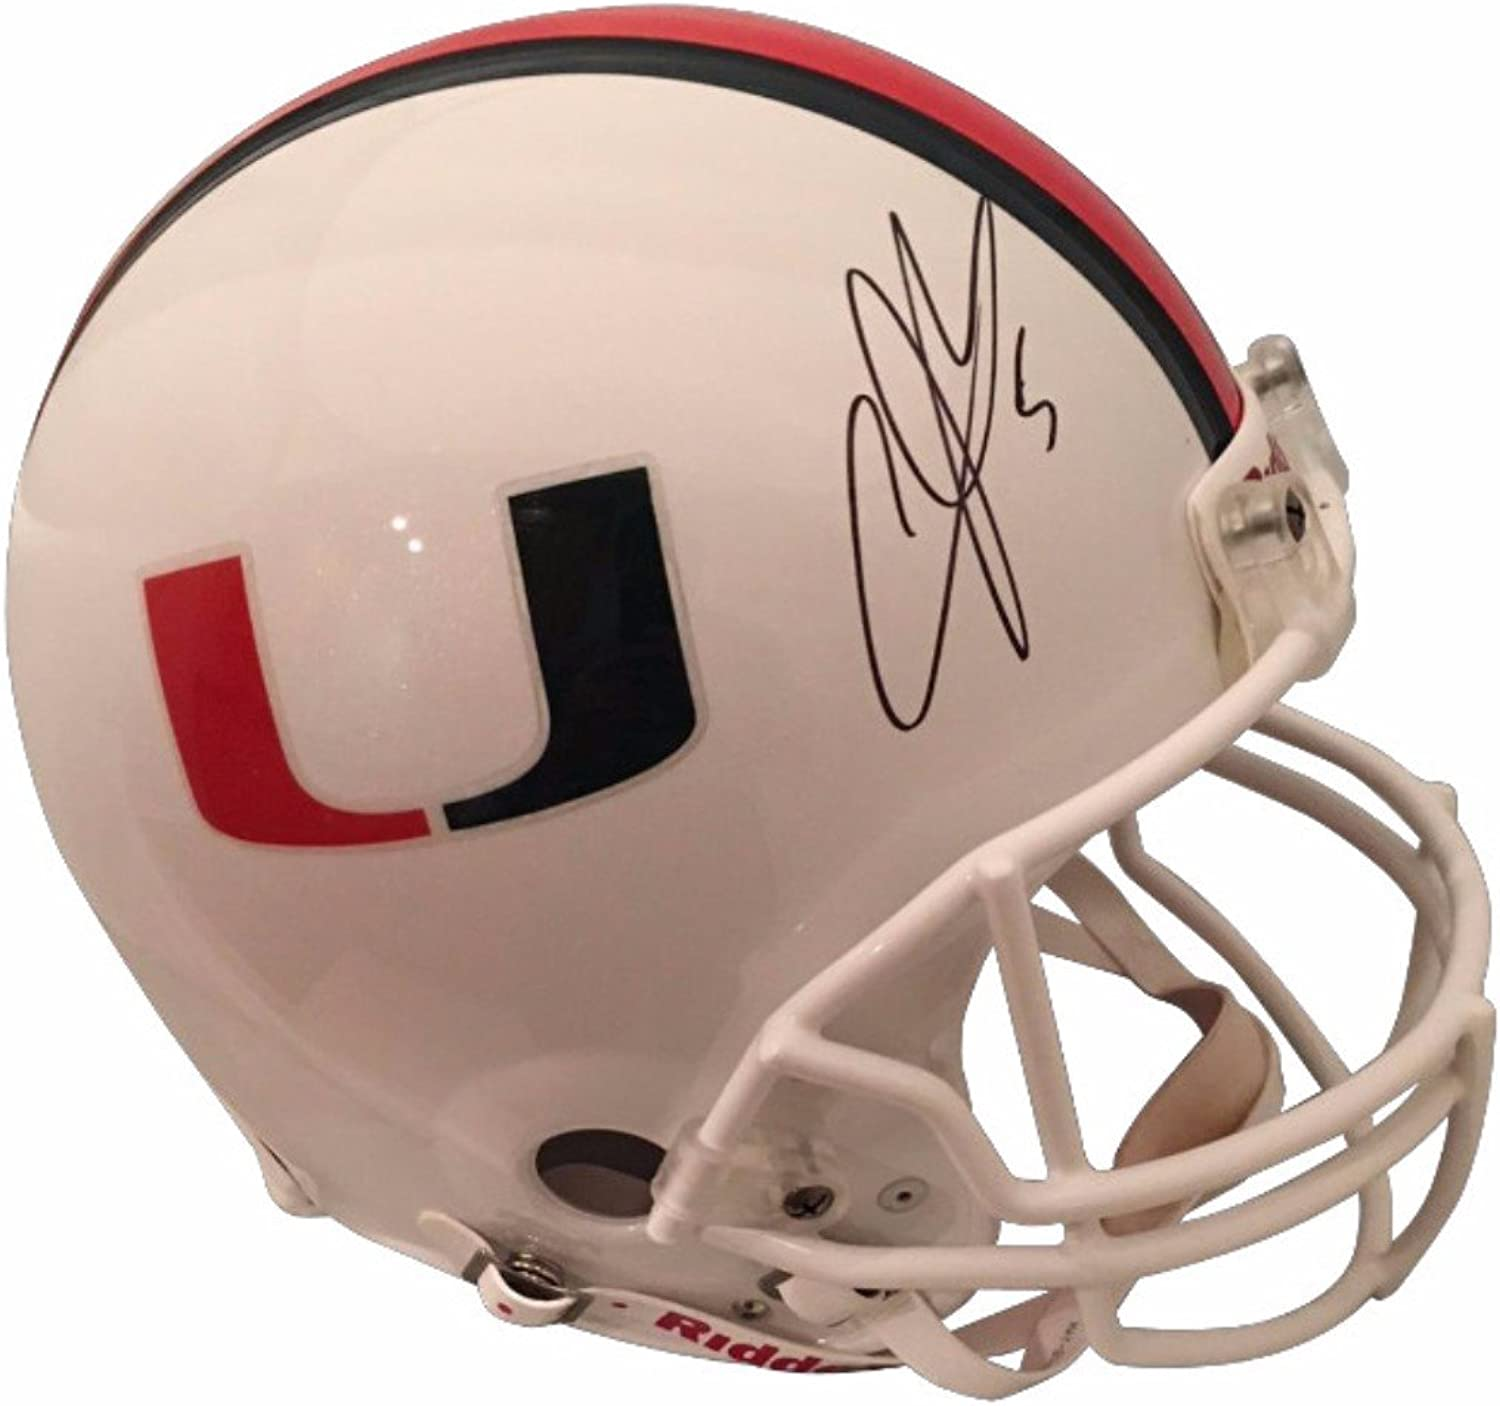 Andre Johnson Autographed Miami Hurricanes Signed Authentic White Football Full Size Helmet JSA COA